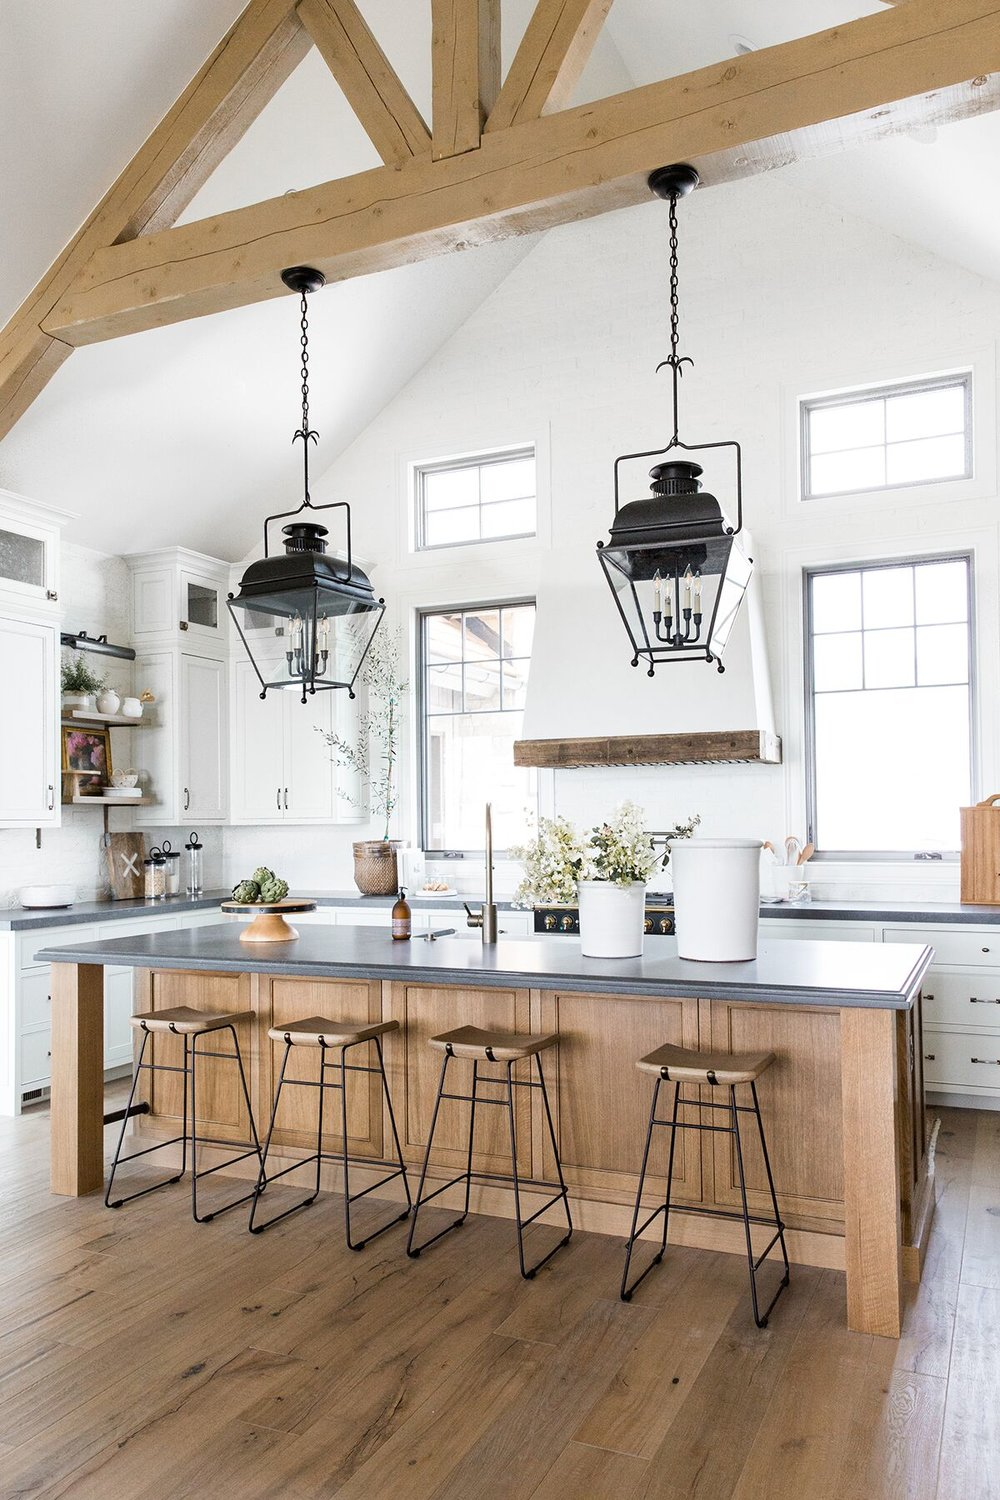 red ledges project in 2020 with images farmhouse on best farmhouse kitchen decor ideas and remodel create your dreams id=24542